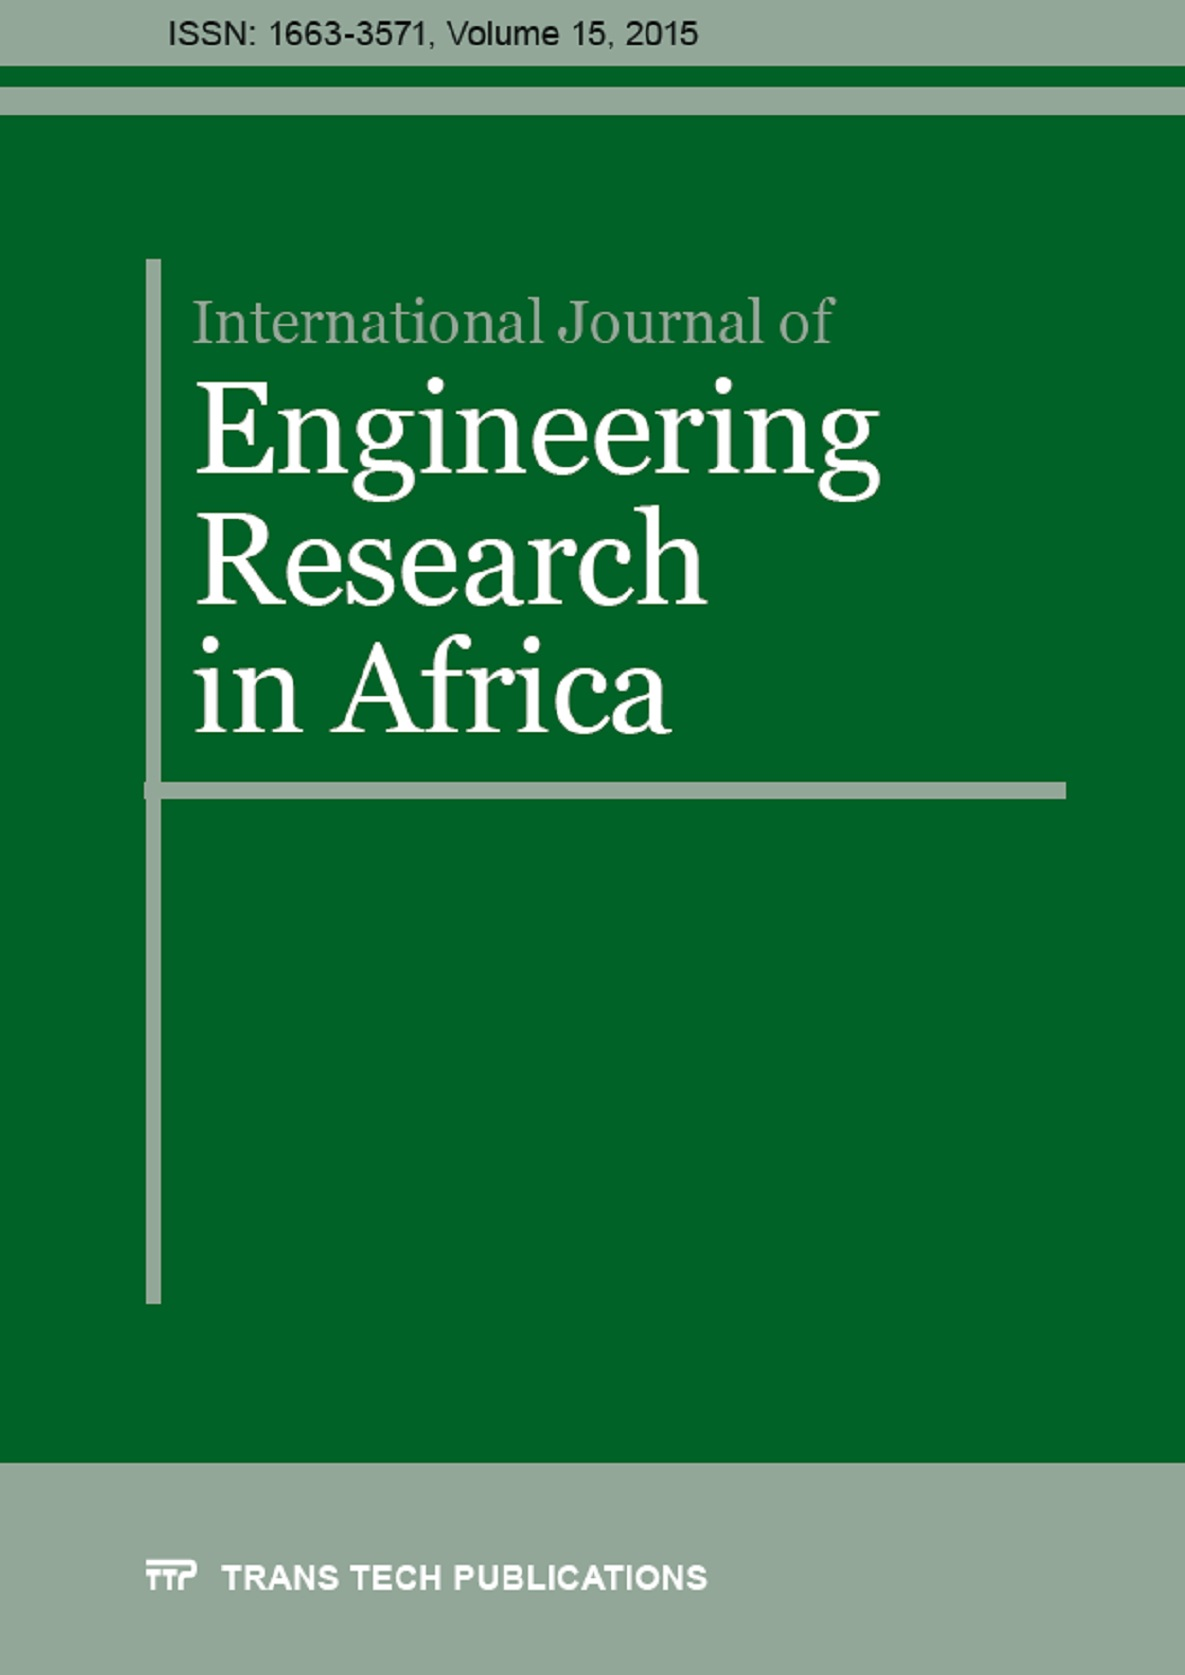 International Journal of Engineering Research in Africa Vol. 15